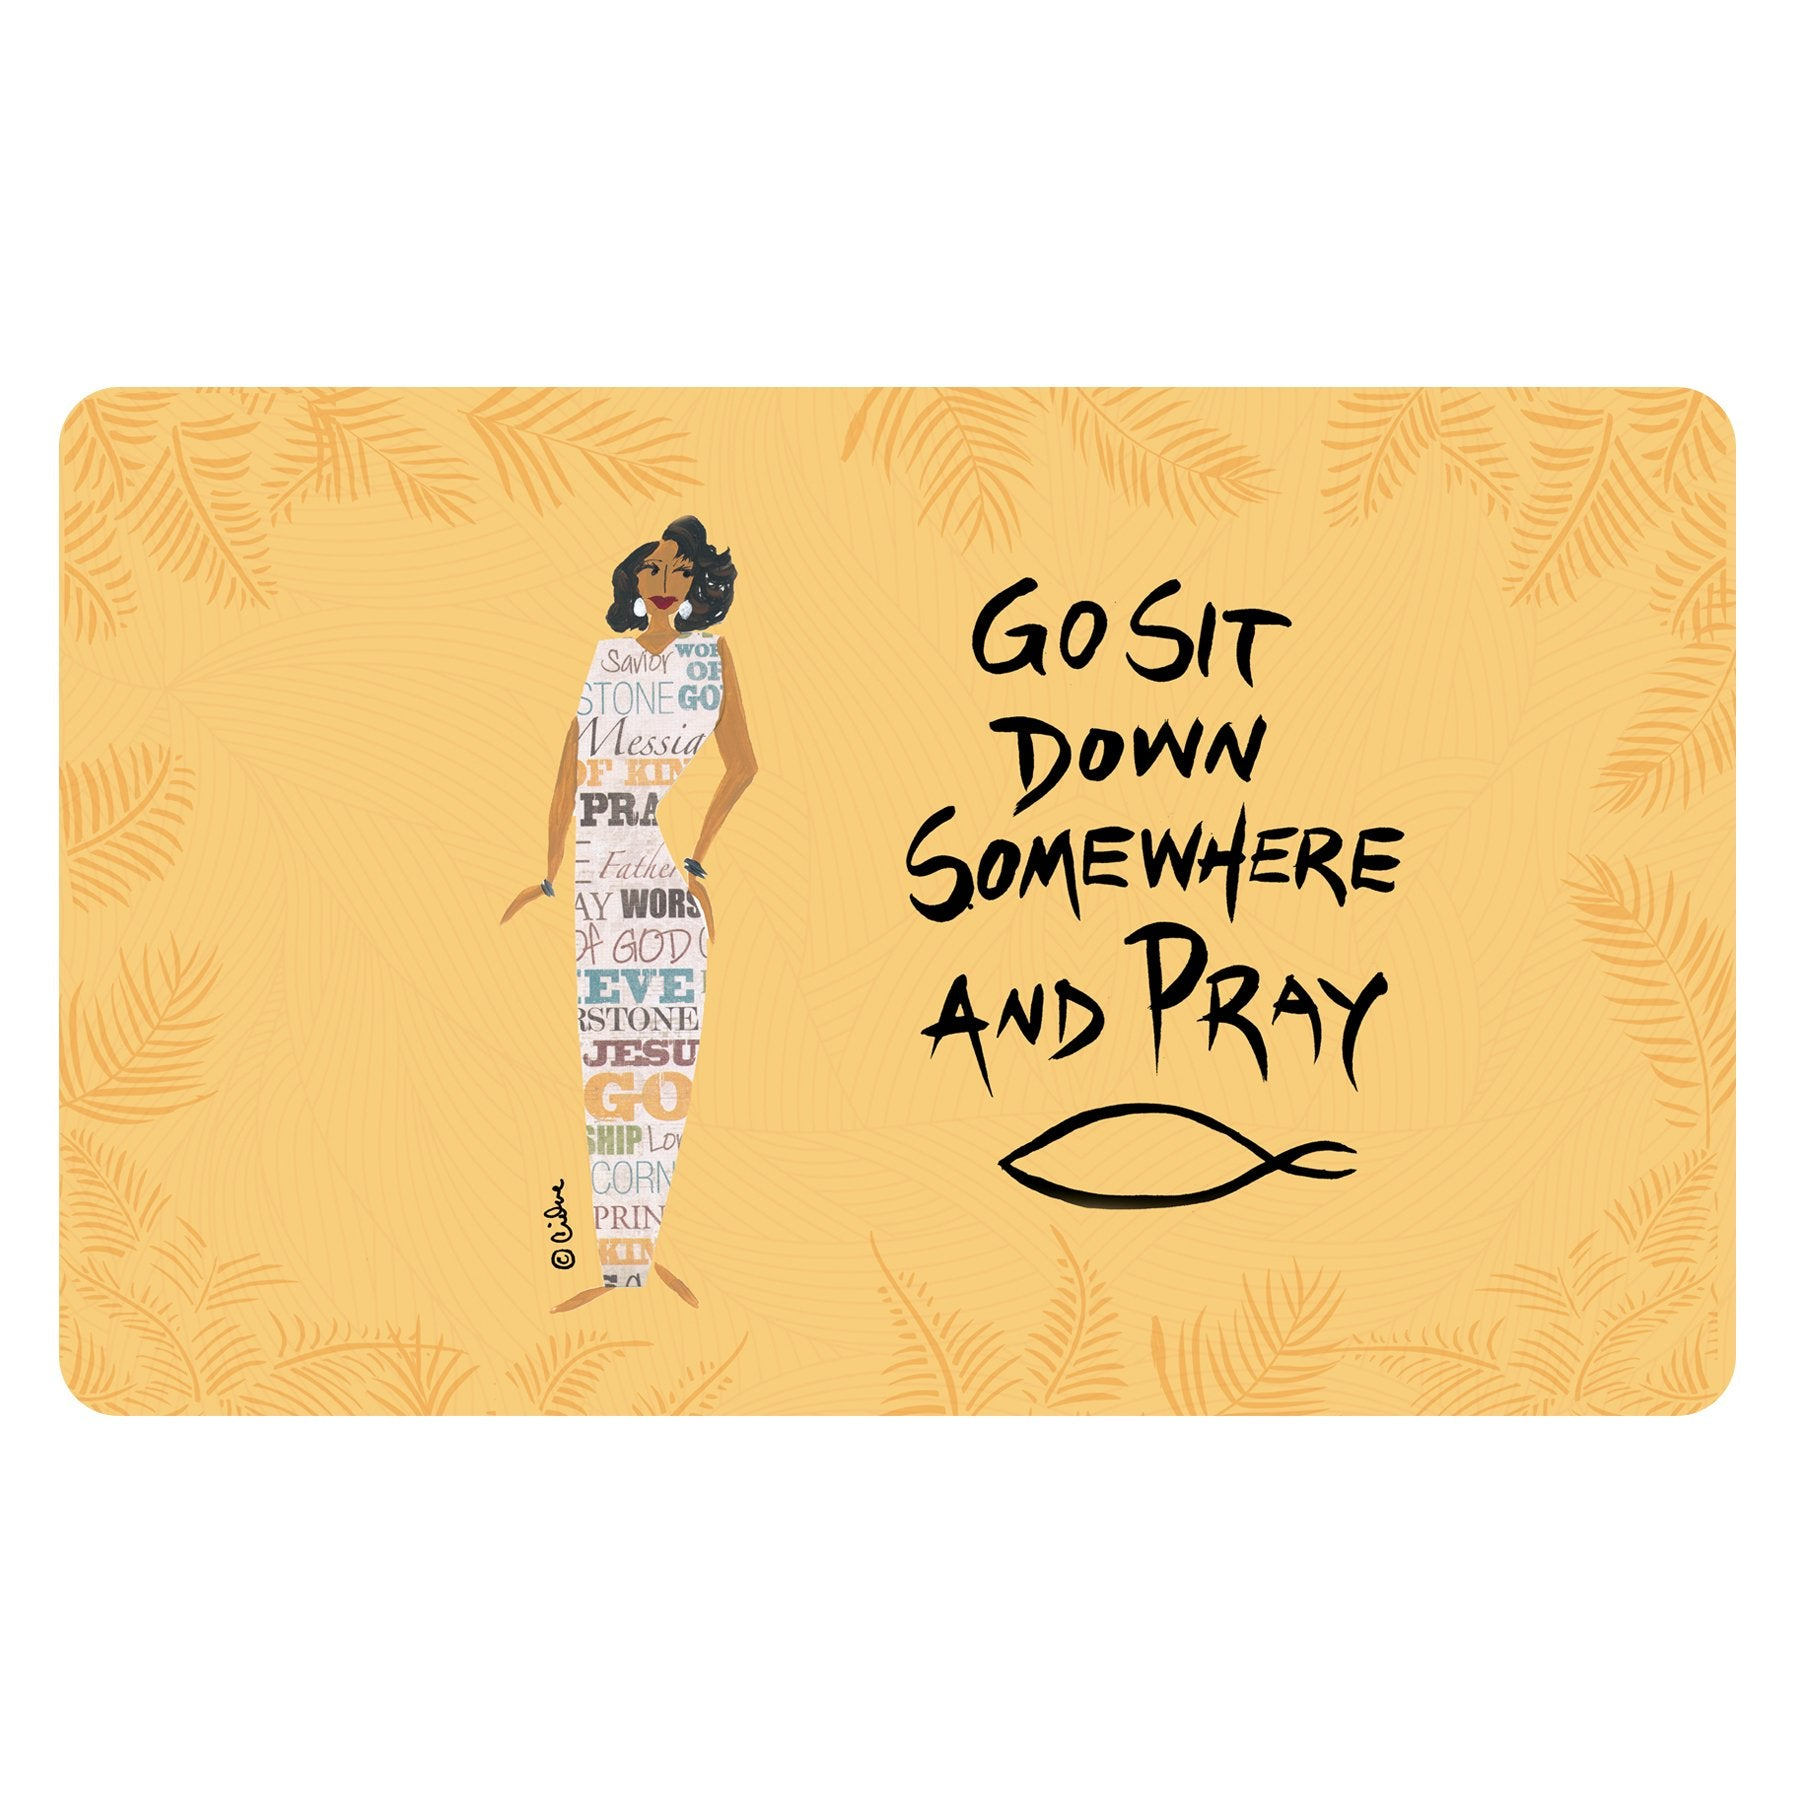 Go Sit Down Somewhere and Pray: Cidne Wallace Interior Floor Mat by Shades of Color